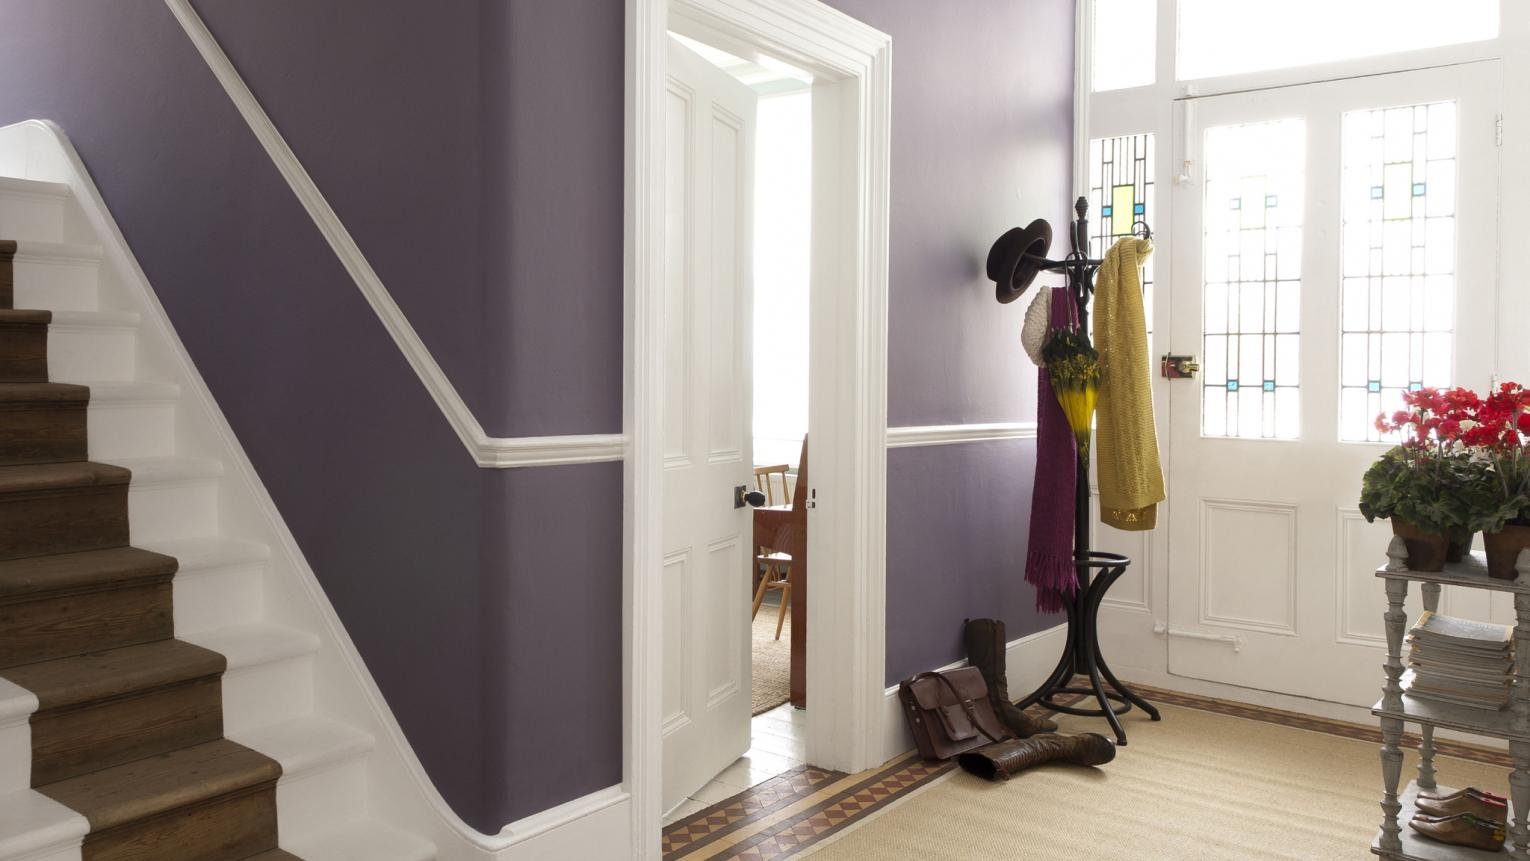 Use a deep shade of purple to enhance a grand entrance hall.